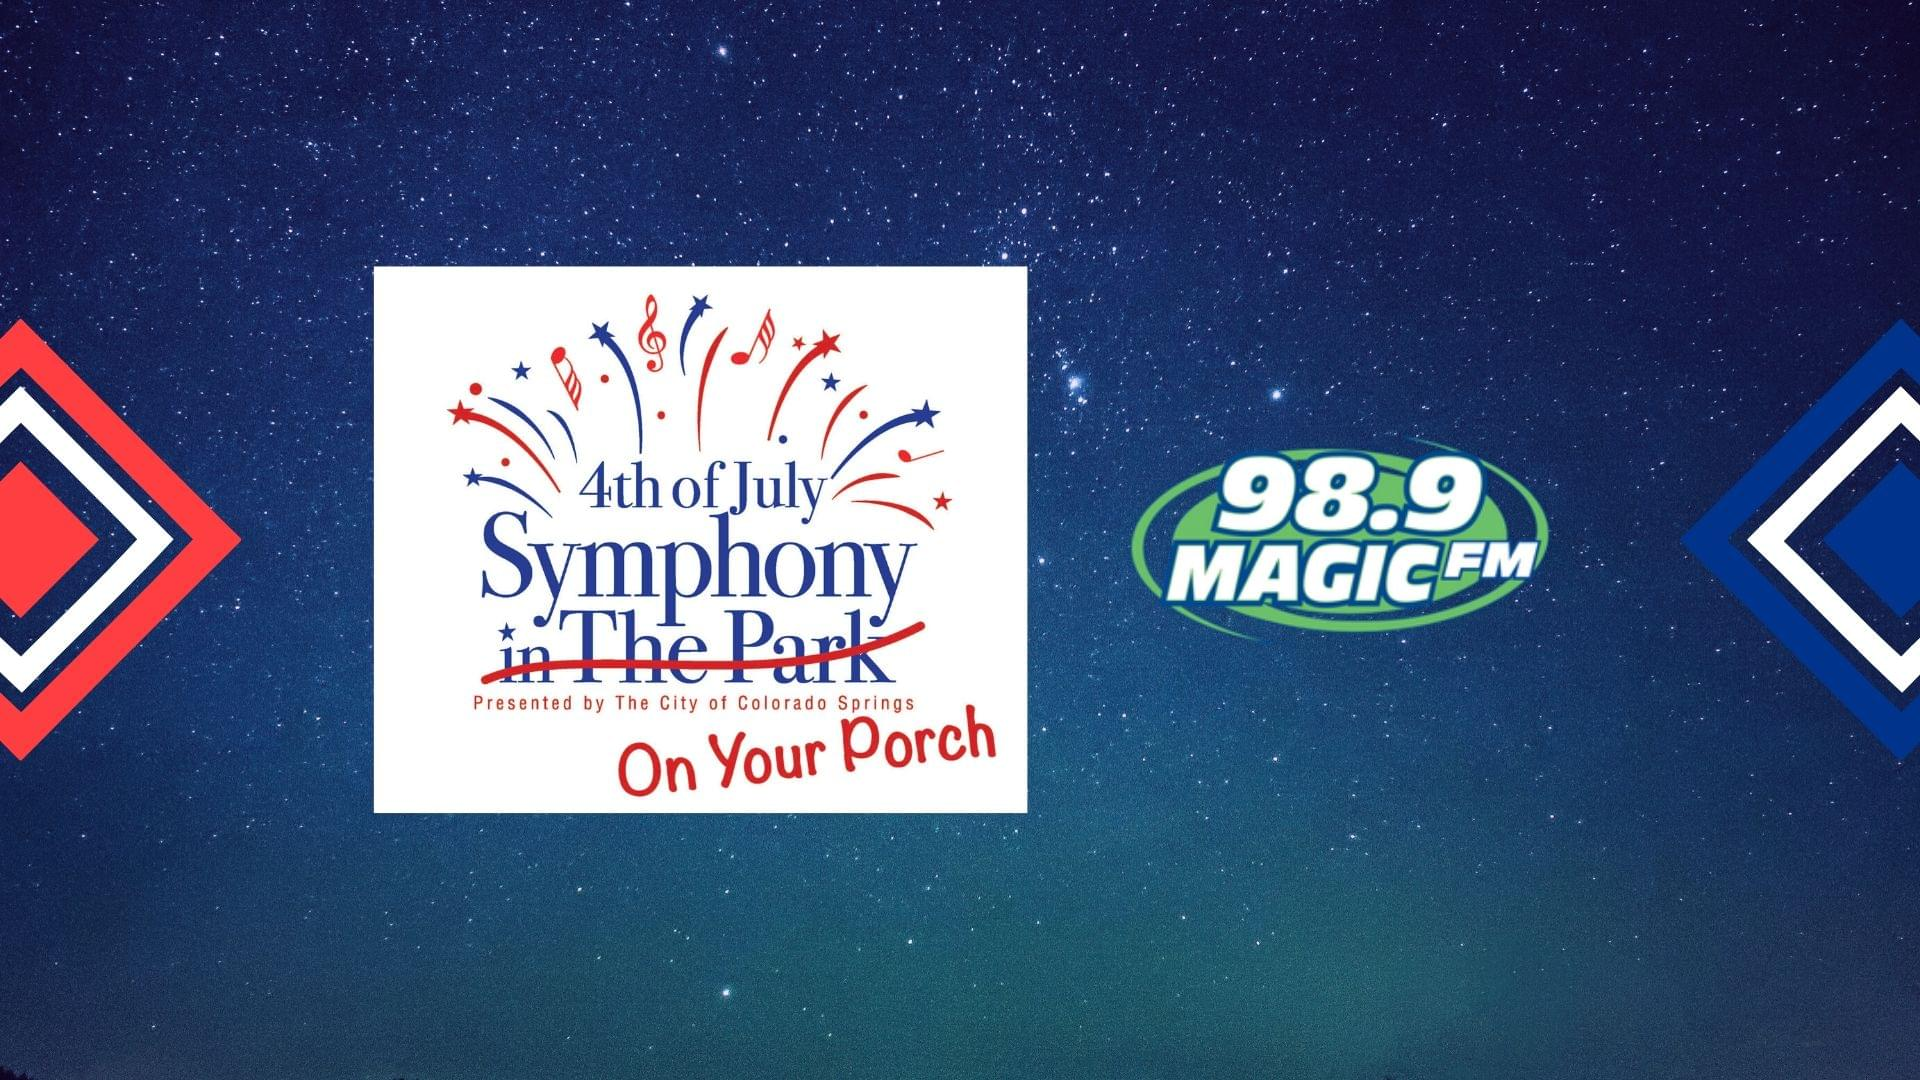 4th Of July Symphony ON YOUR PORCH!